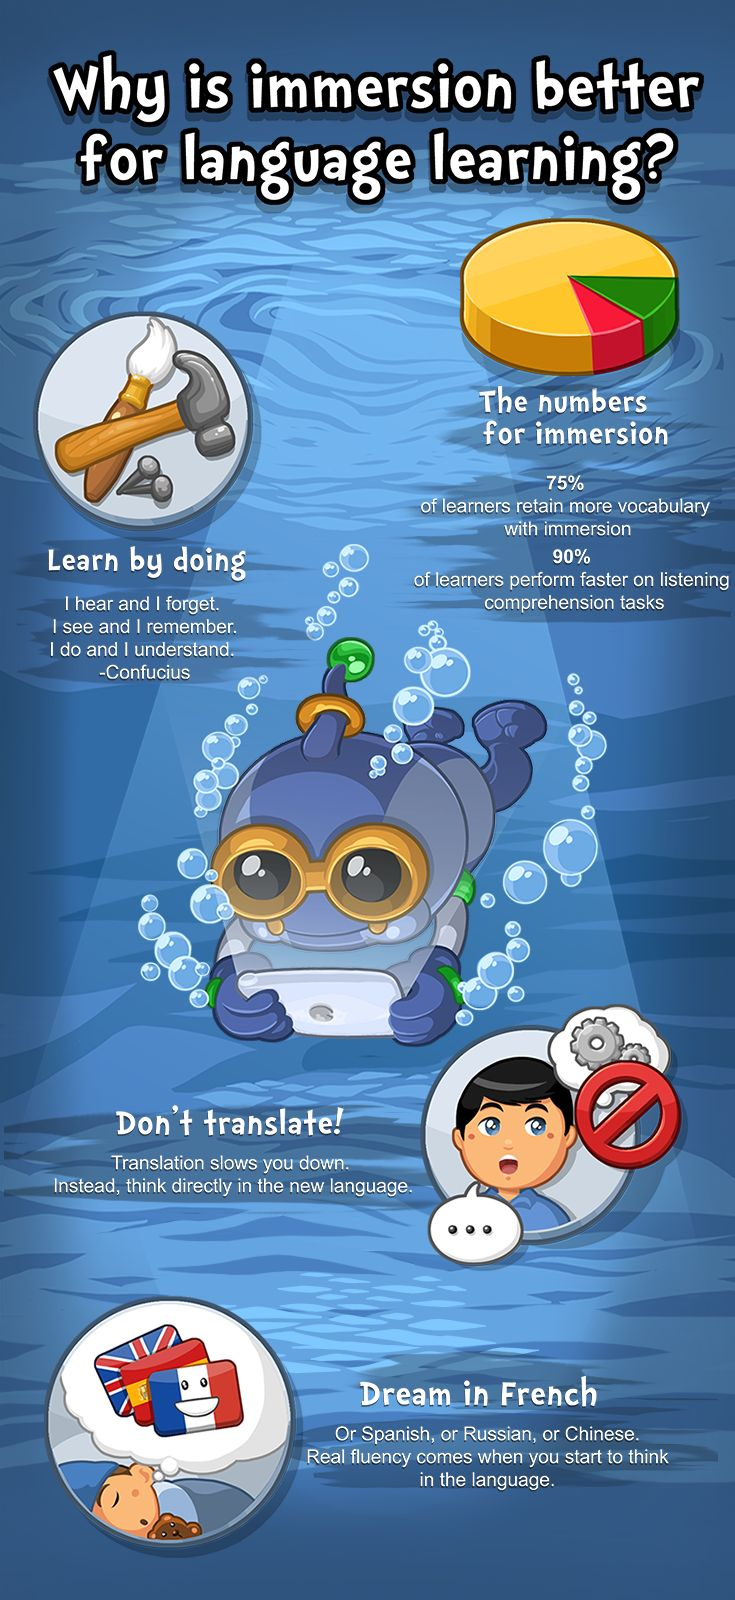 Immersion is Better for Language Learning Infographics: App Free Download https://itunes.apple.com/app/apple-store/id984967146?pt=1948807&ct=thinkfv6&mt=8